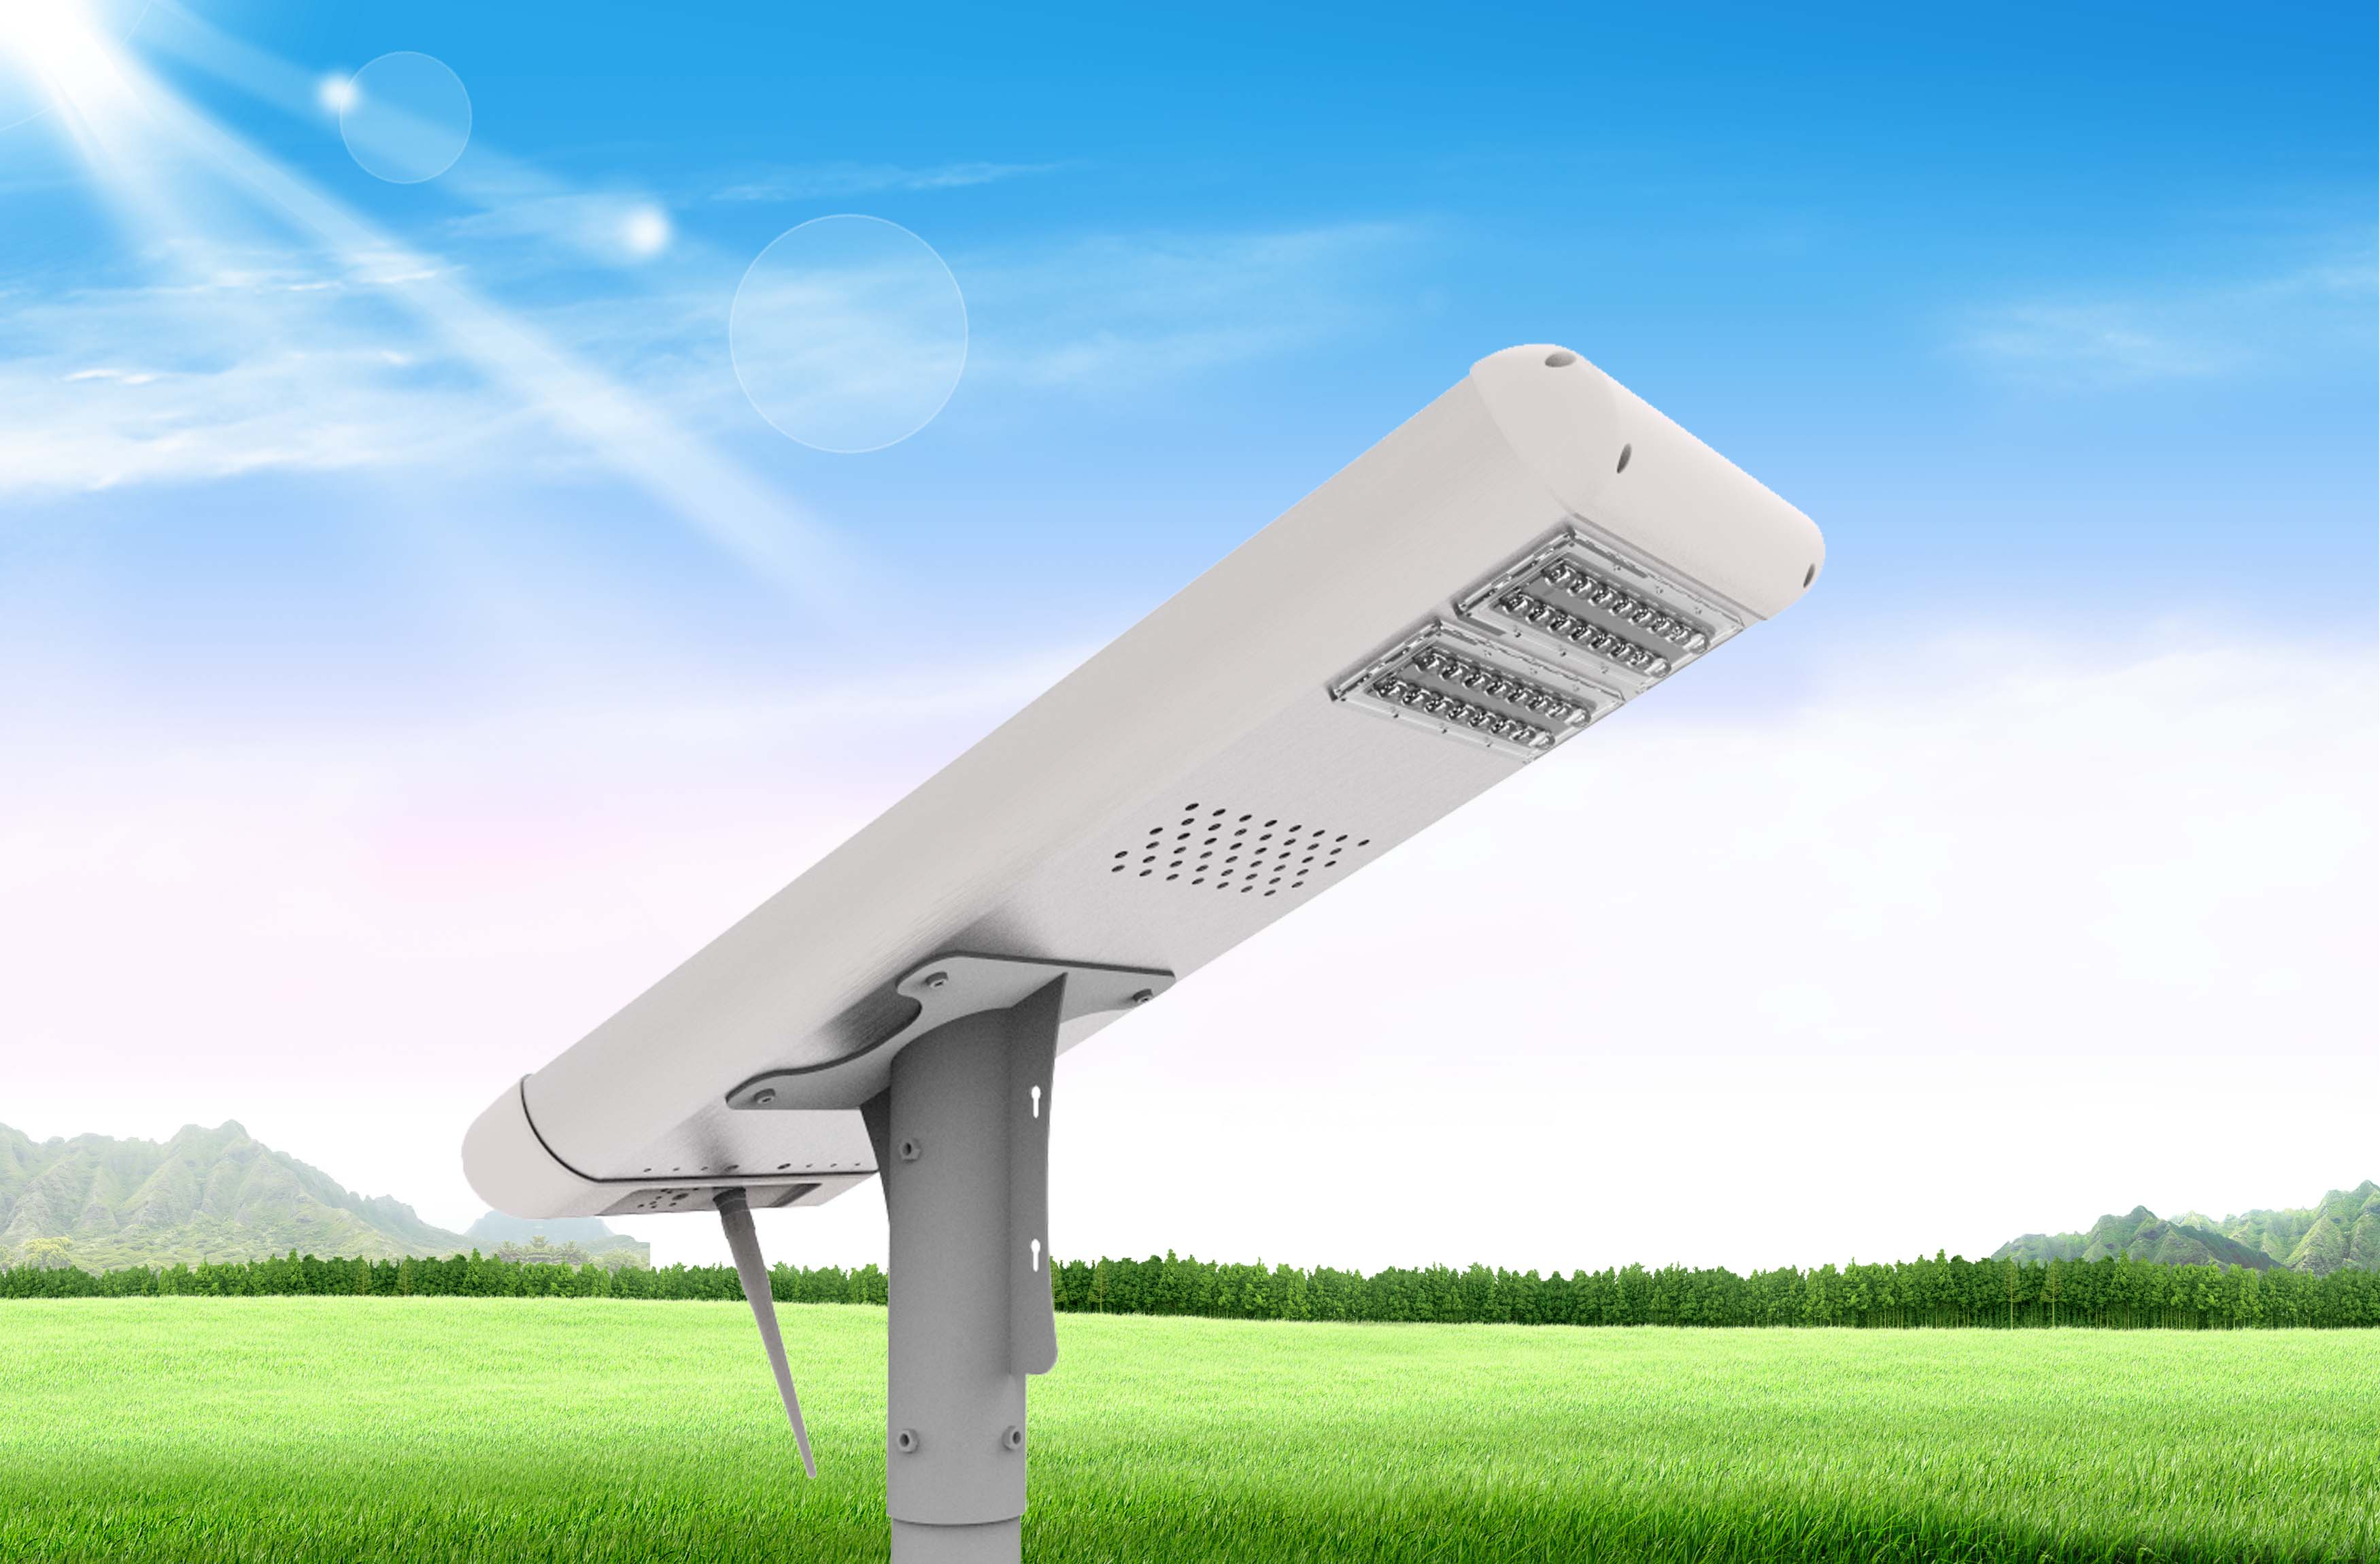 remote control system all in one solar street lights for government projects